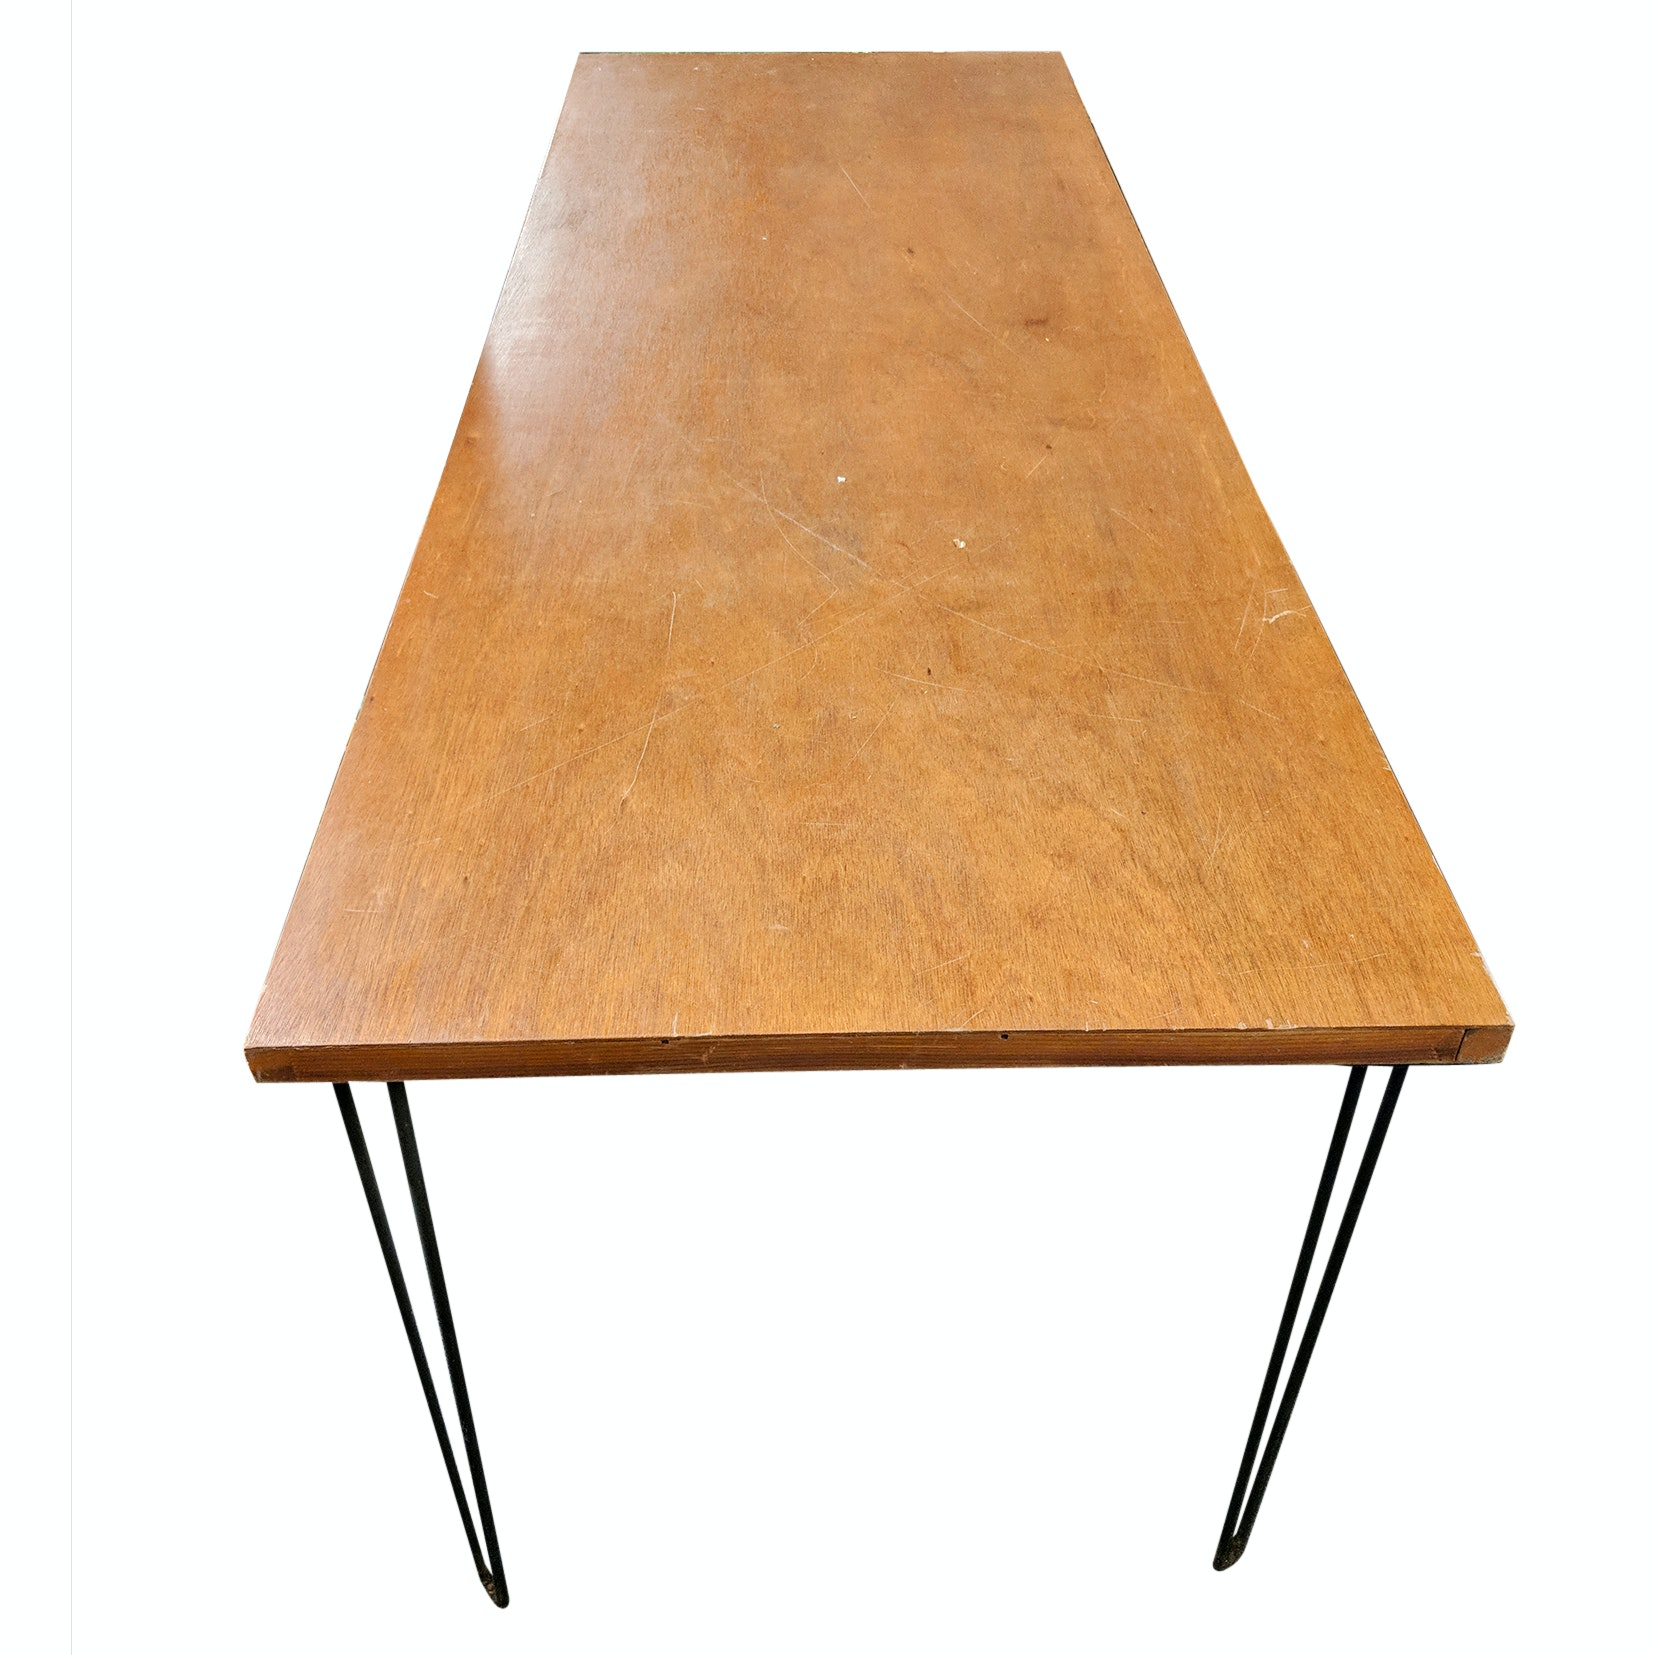 Mid-Century Modern Style Handcrafted Table